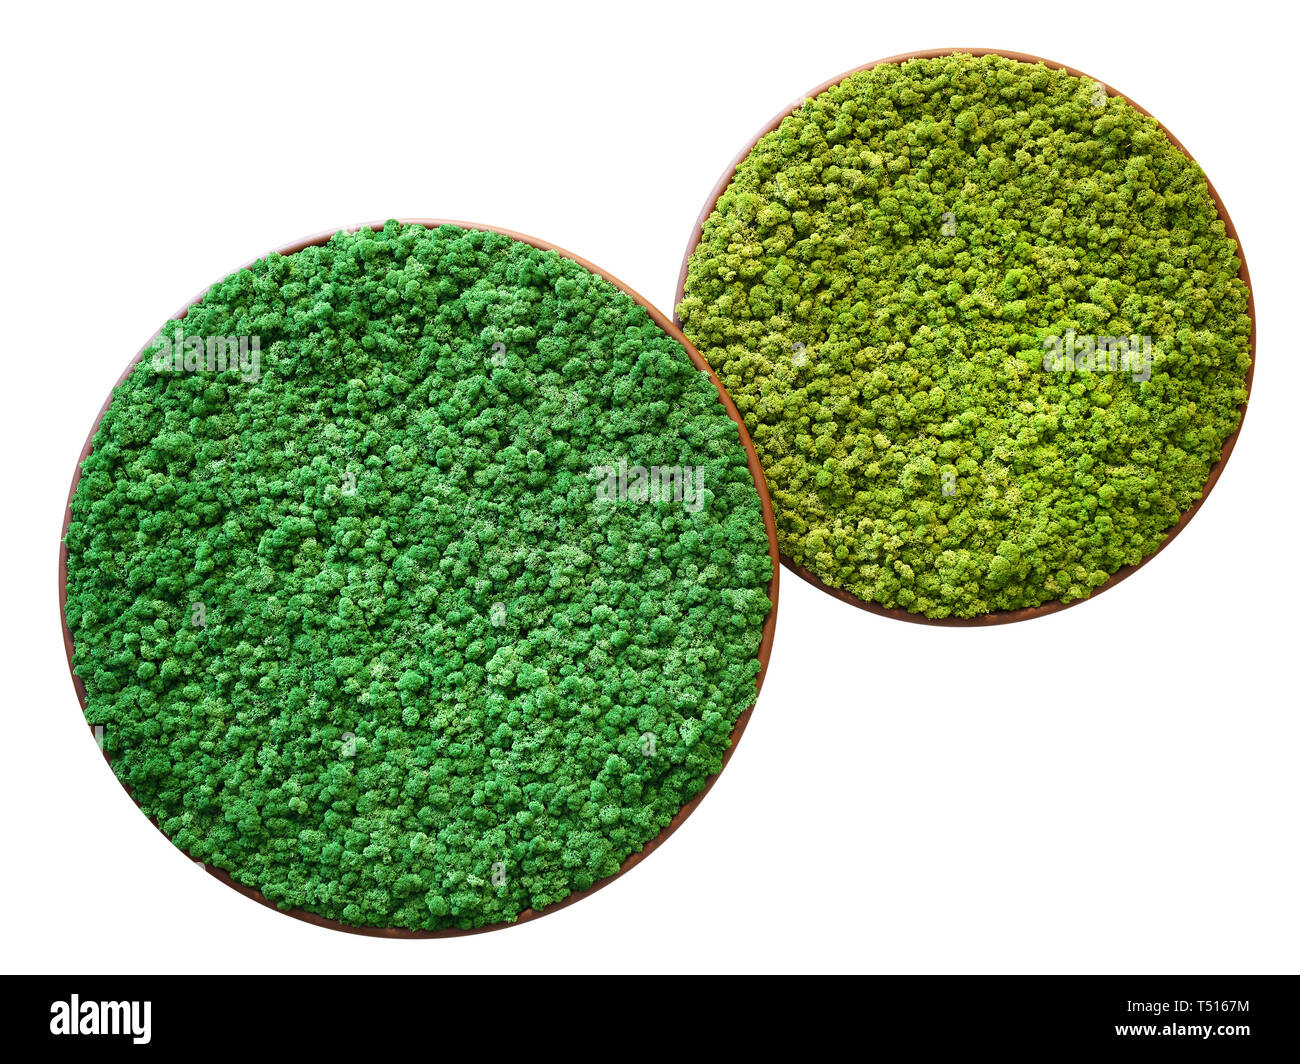 Two Different Examples Of Finland Mosses Types In Overlaying Round